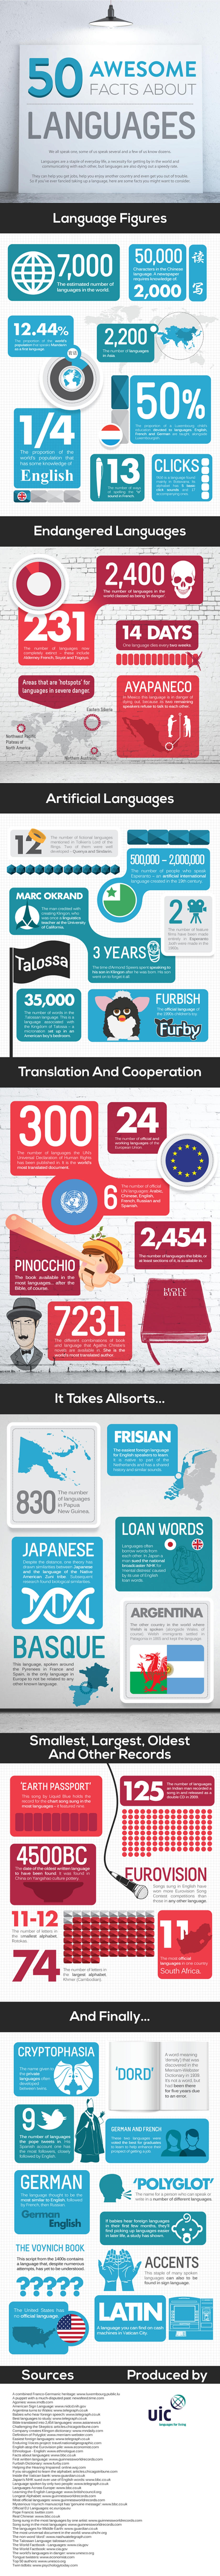 Interesting fact about languages #infographic